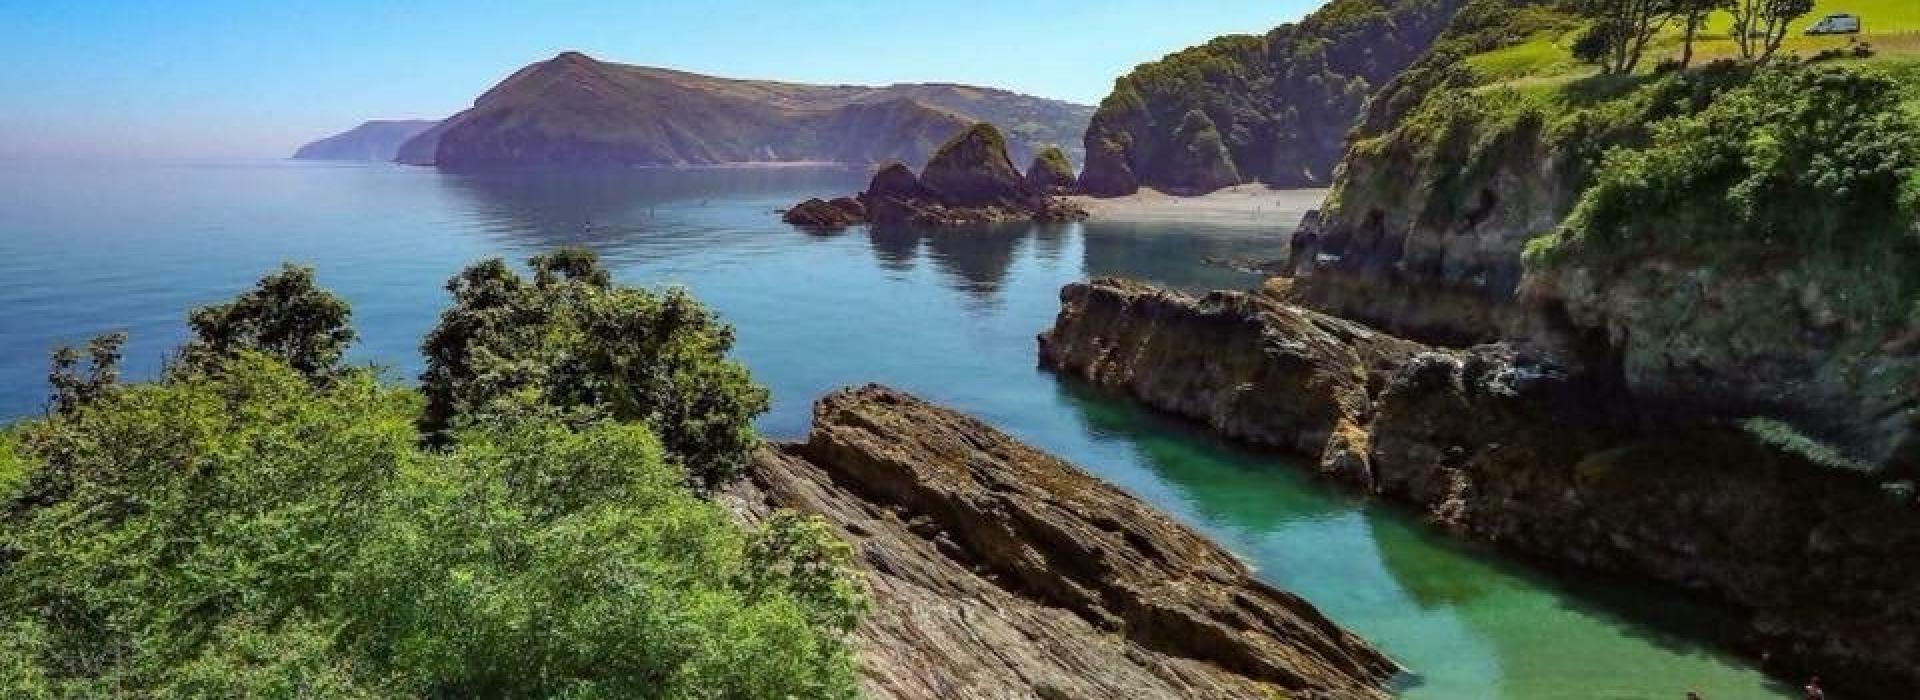 paddle boarding near me, active escape, coasteering devon, watersports devon, things to do near me